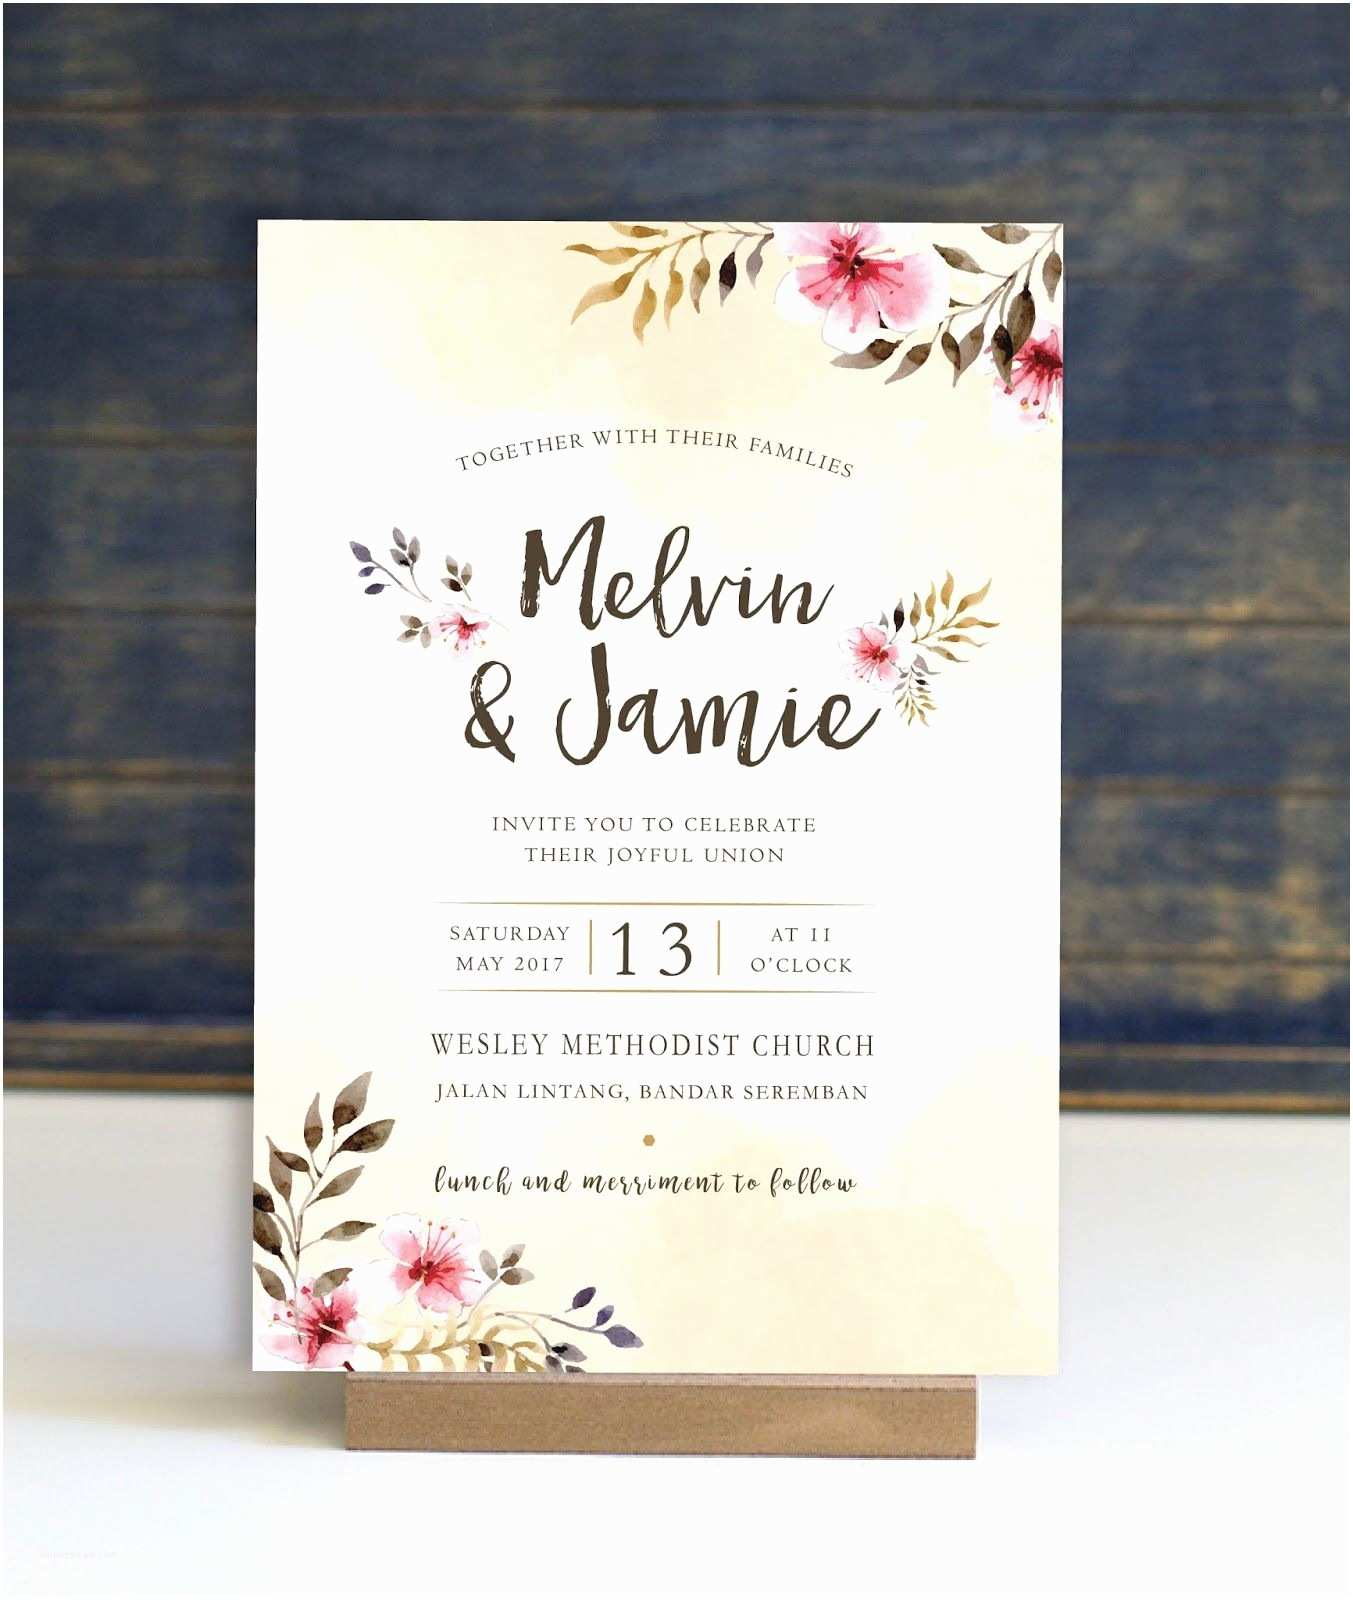 Wedding Invitation Designs Free Download Wedding Invitation Card Wedding Invitation Card Design